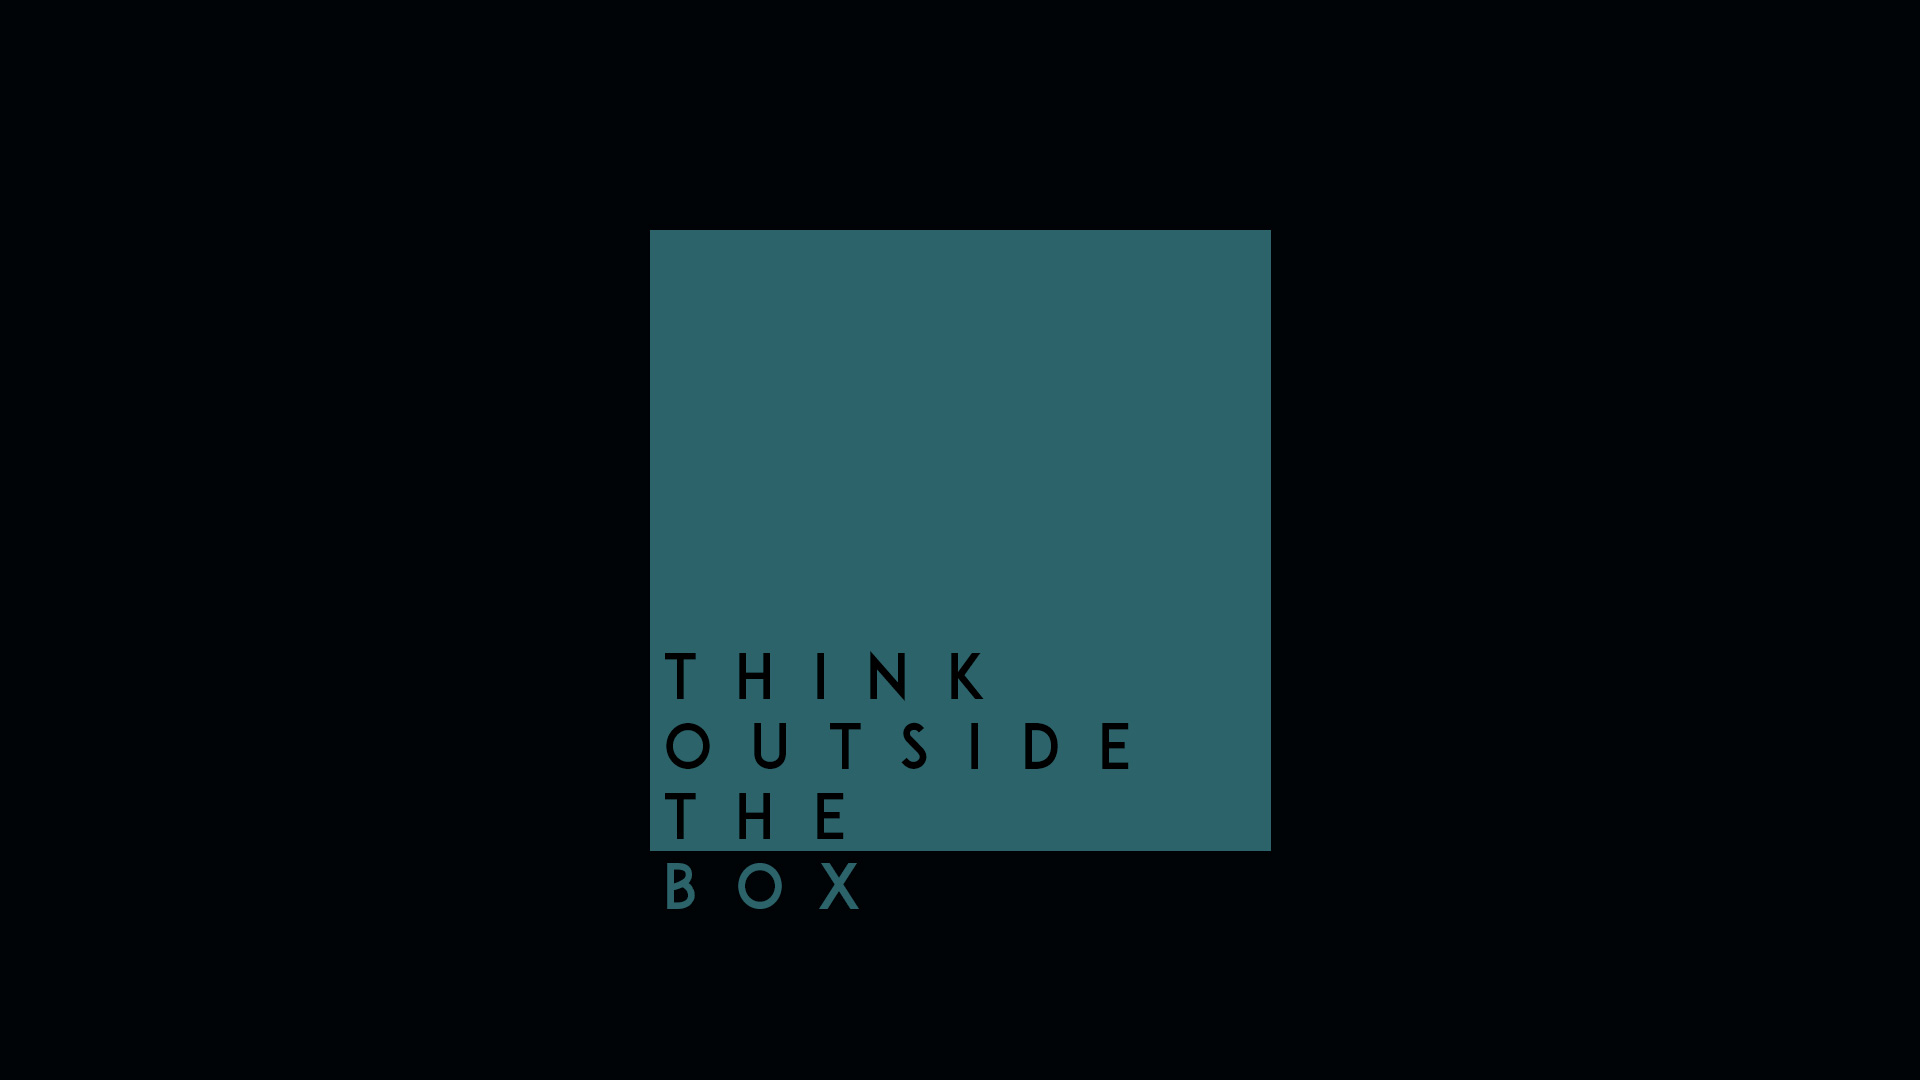 think outside the box hd hd typography 4k wallpapers images backgrounds photos and pictures. Black Bedroom Furniture Sets. Home Design Ideas